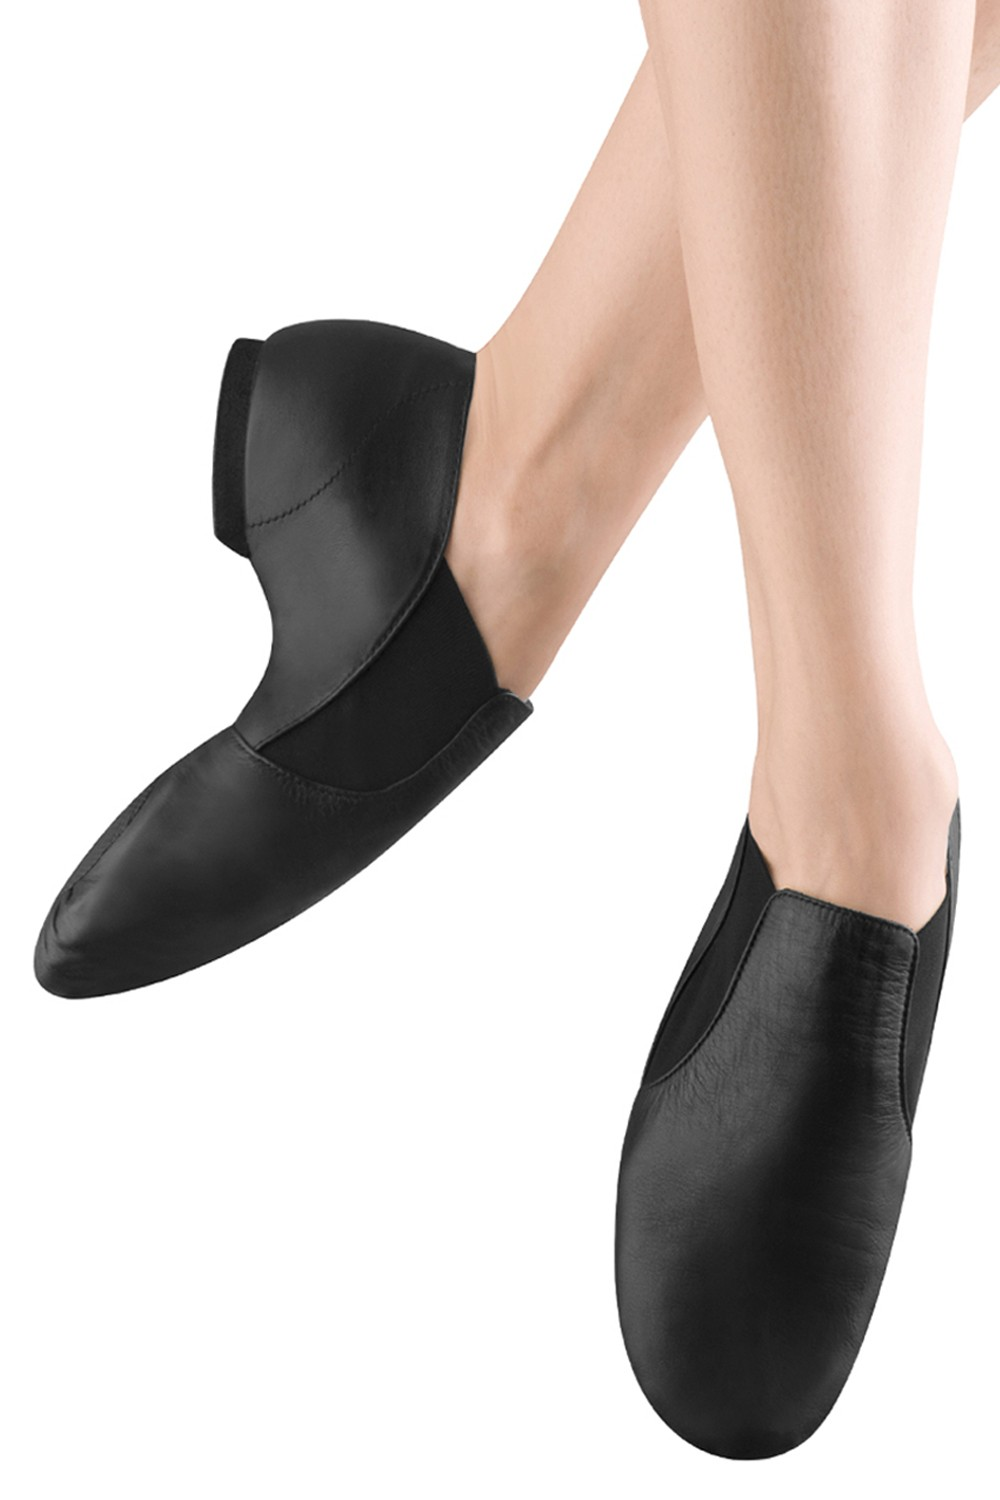 Elasta Bootie - Men's Men's Jazz Shoes